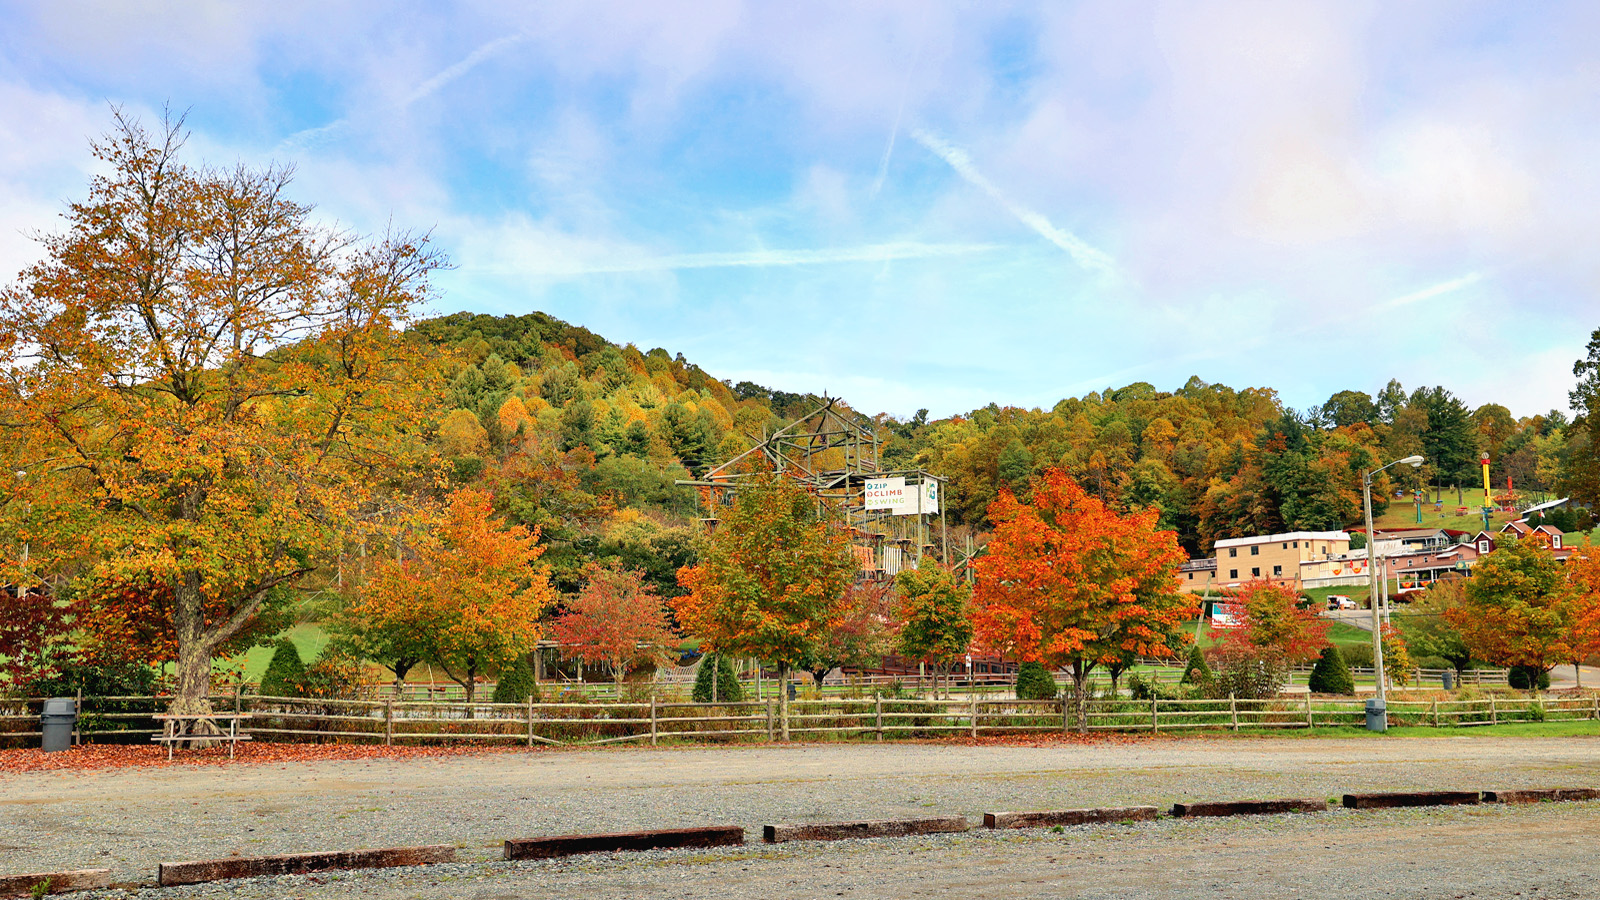 Price Park near Blowing Rock